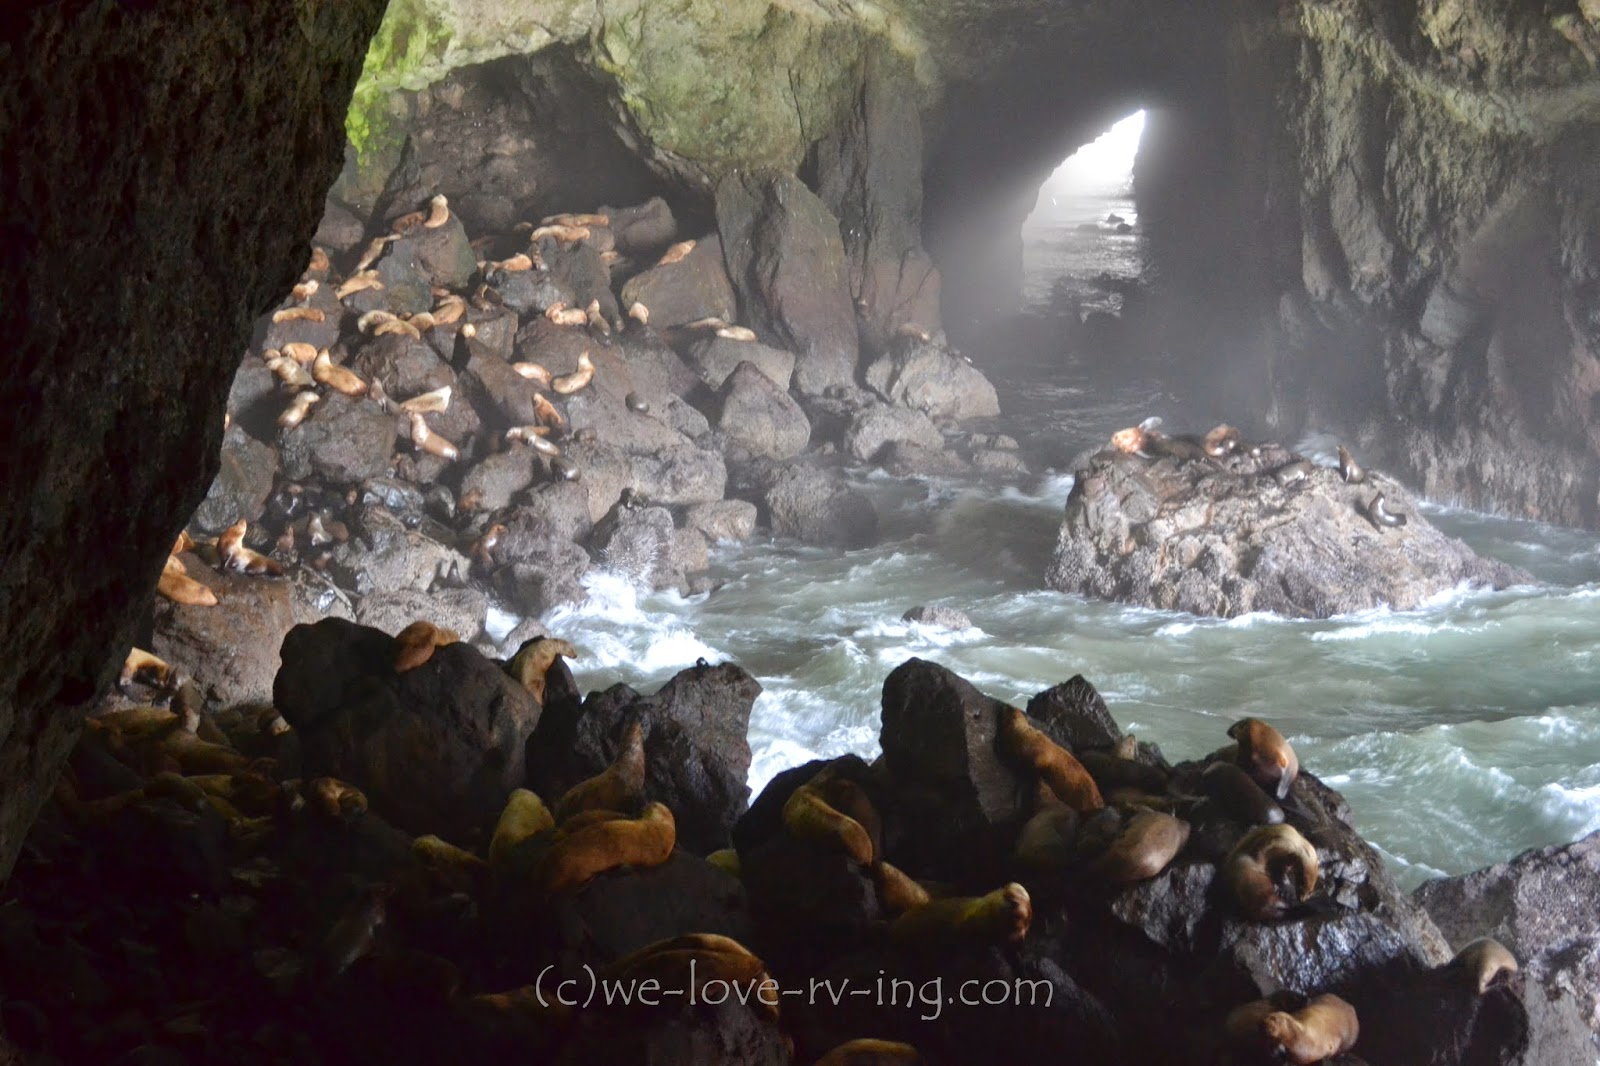 A crowd of sea lions gather in the cave